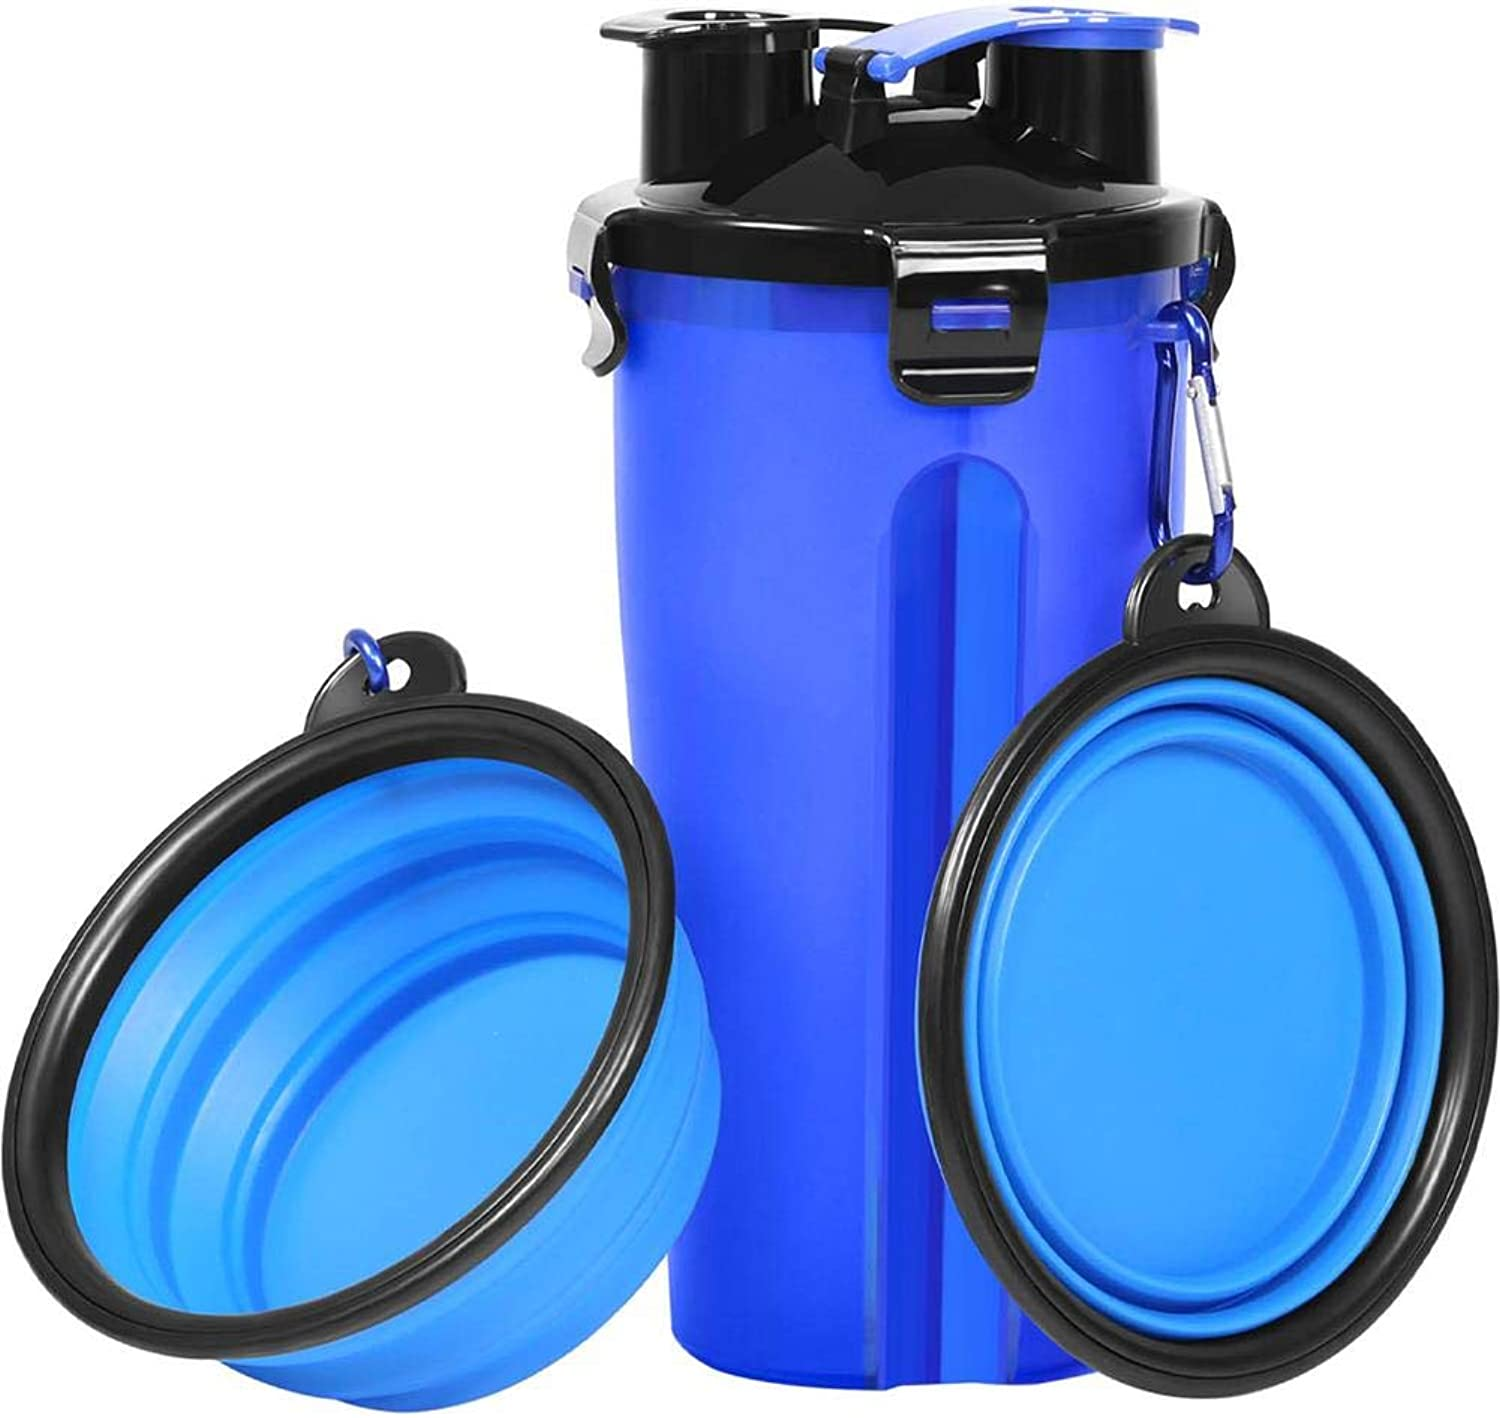 Portable Dog Water Bottle Dog Bowls for Traveling Walking Hiking Pet Food Container 2in1 with Collapsible Dog Bowls, Outdoor Dog Water Bowls for Walking Hiking Travelling